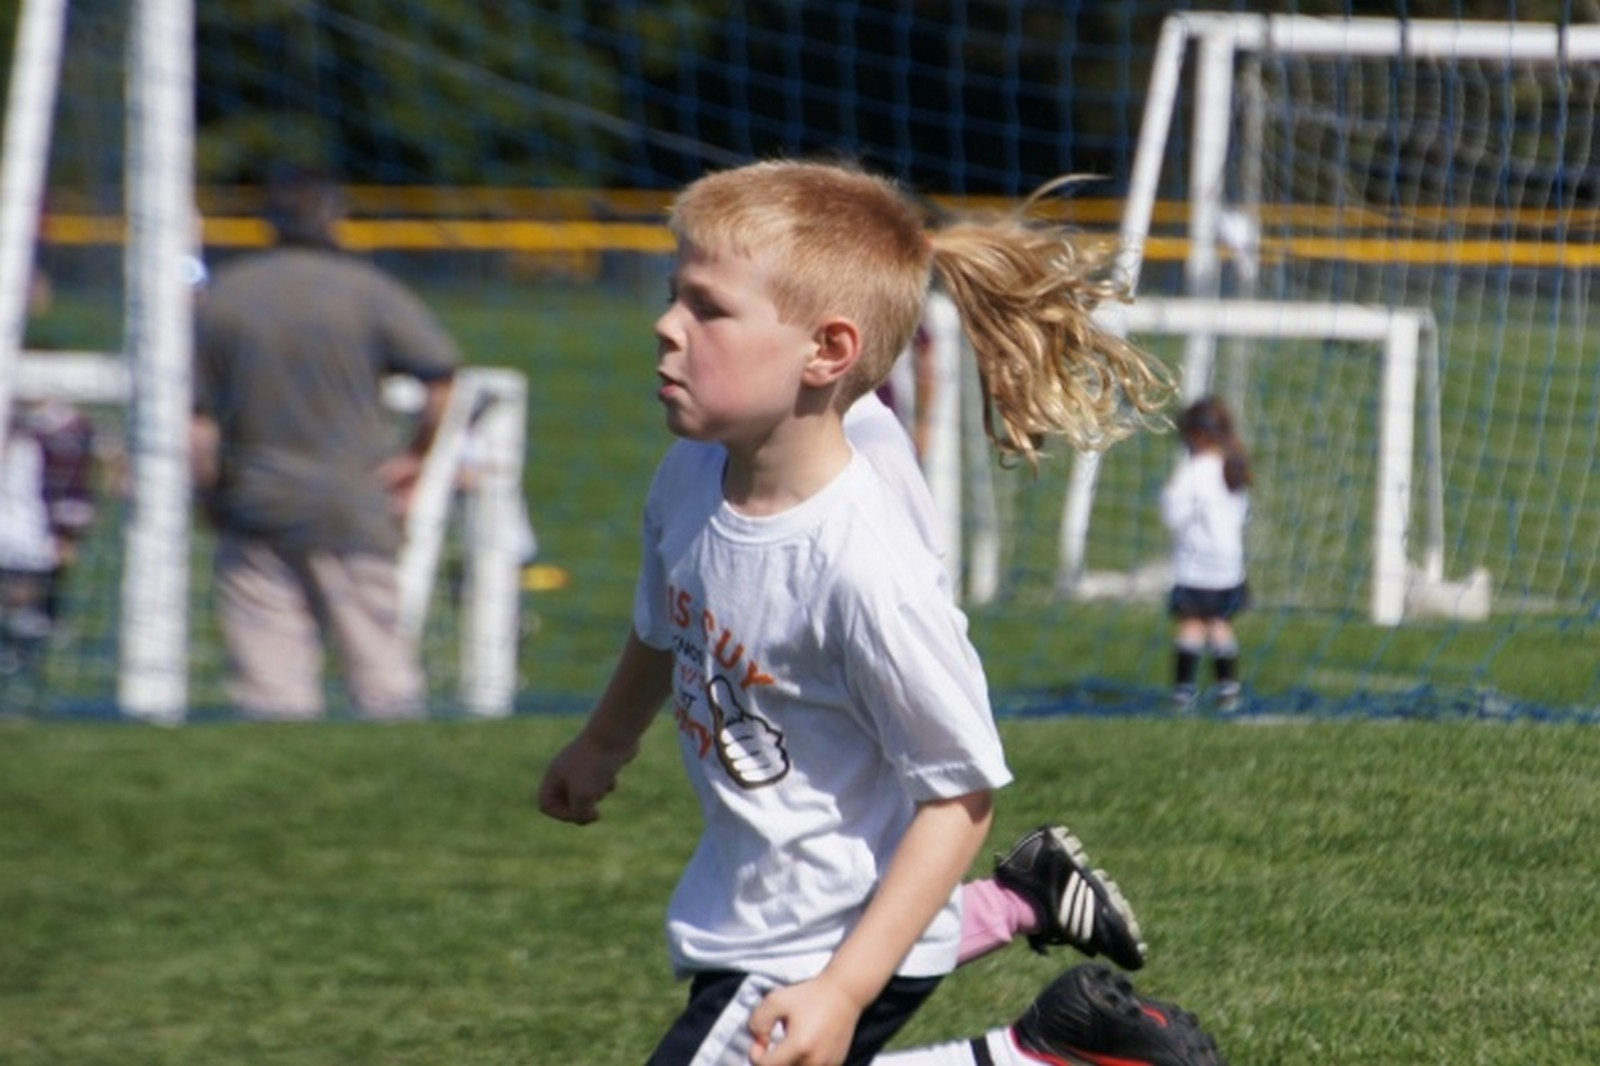 18 Perfectly Timed Photos - He's making a beauty statement on the field.